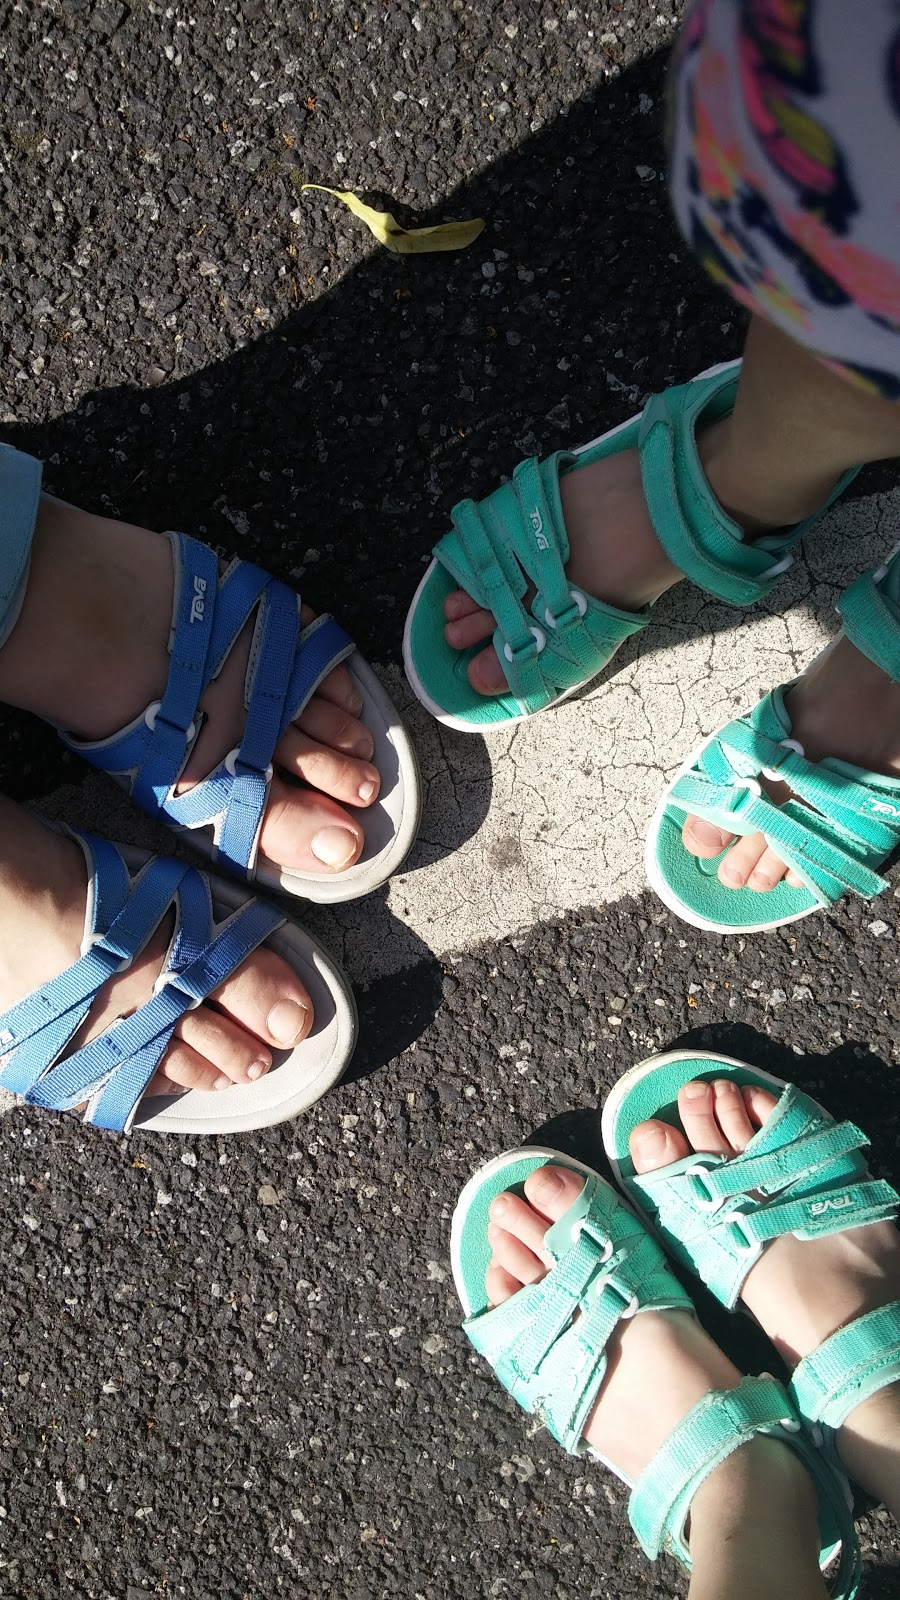 903087f1656937 Currently on our fourth day of the school holidays and our Teva sandals  have not left our feet  well except when we are in the house .